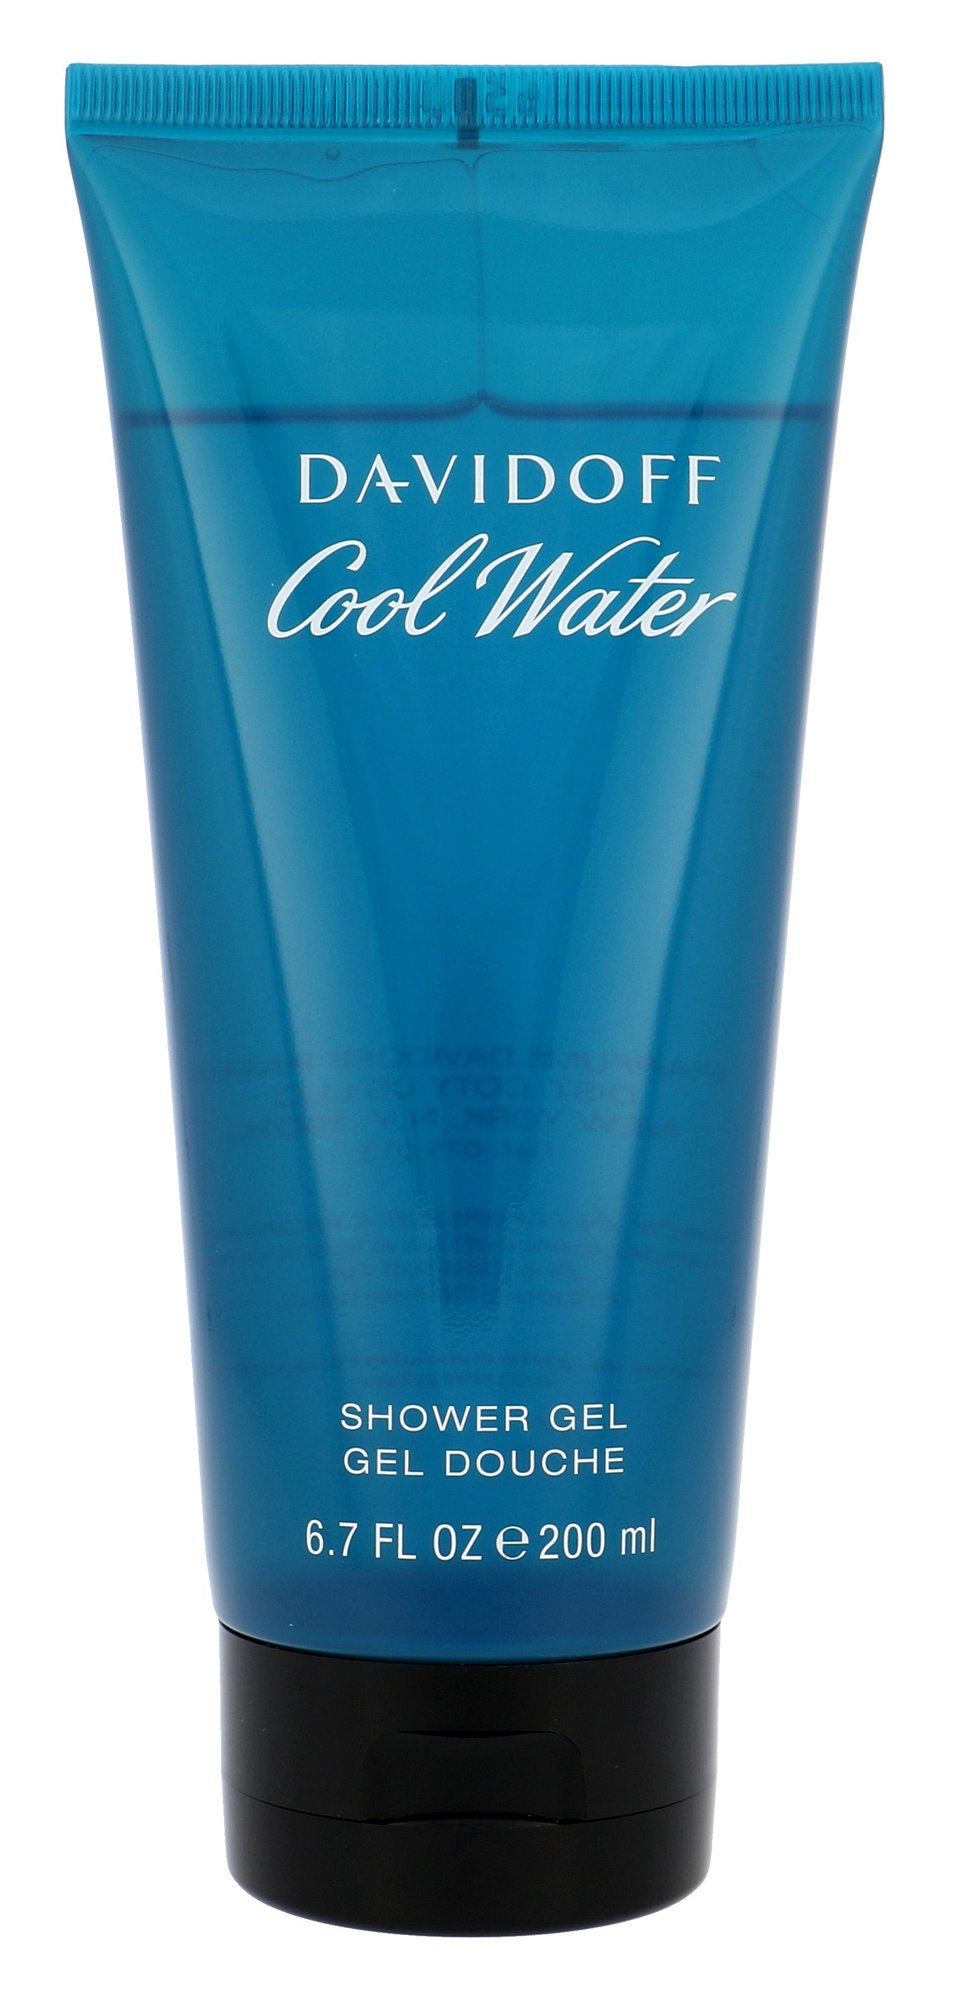 Davidoff Cool Water Shower gel 200ml